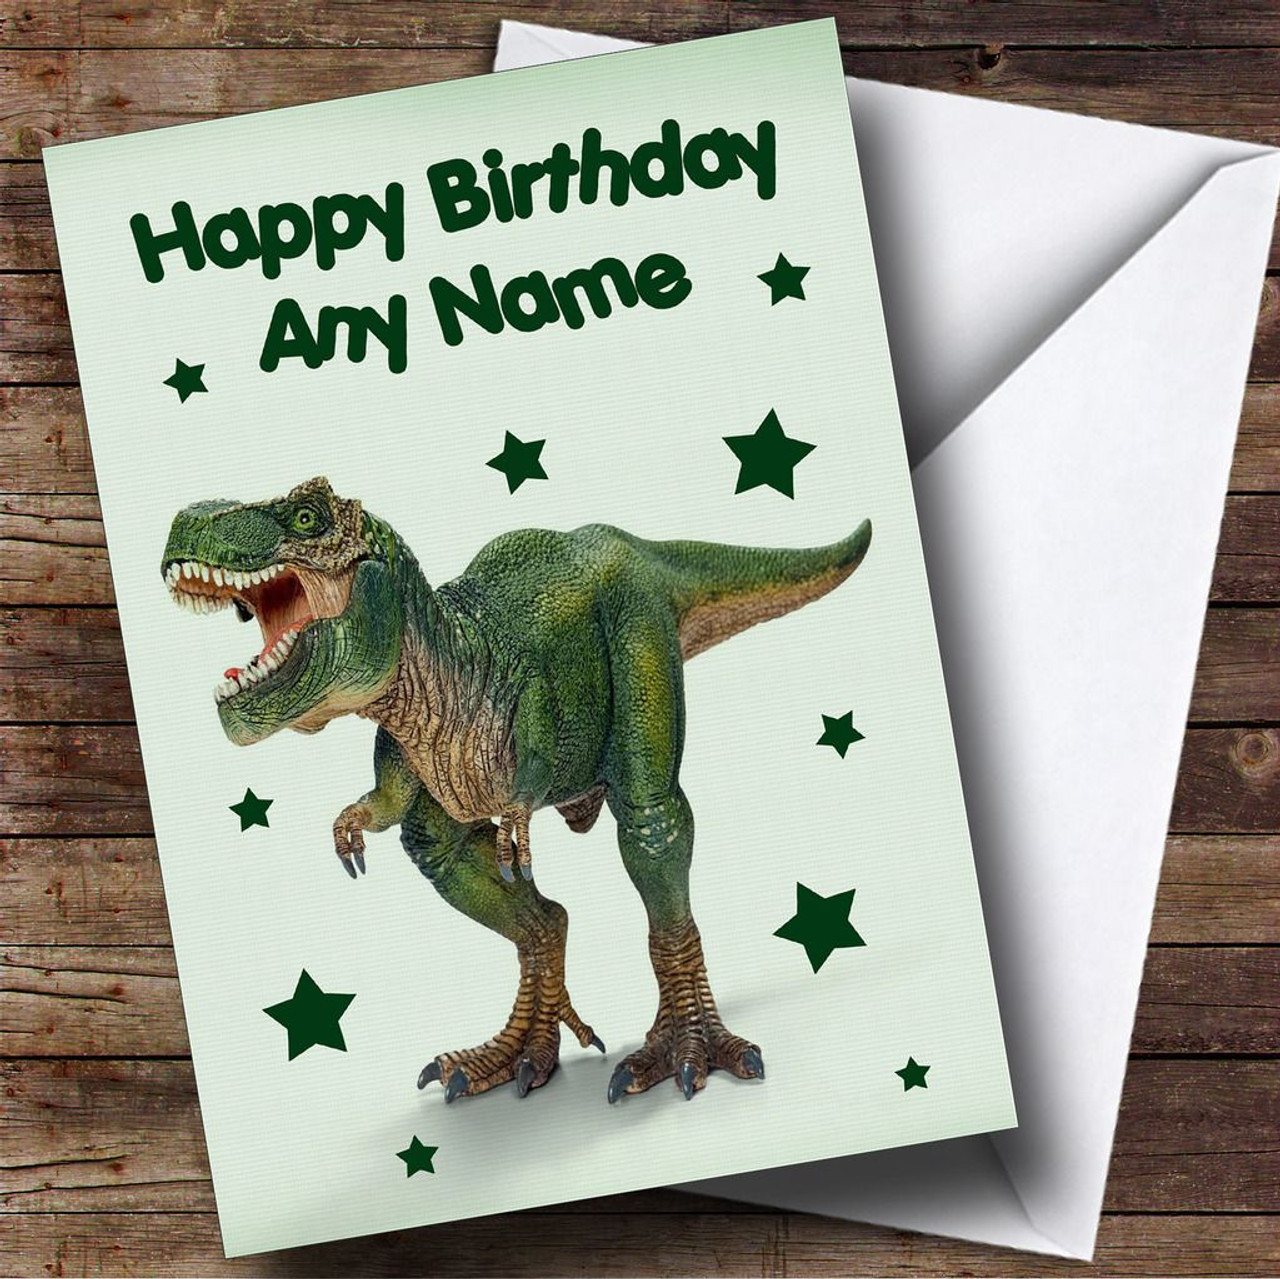 Australian Birthday Cards Online animated greeting cards free – Australian Birthday Cards Online